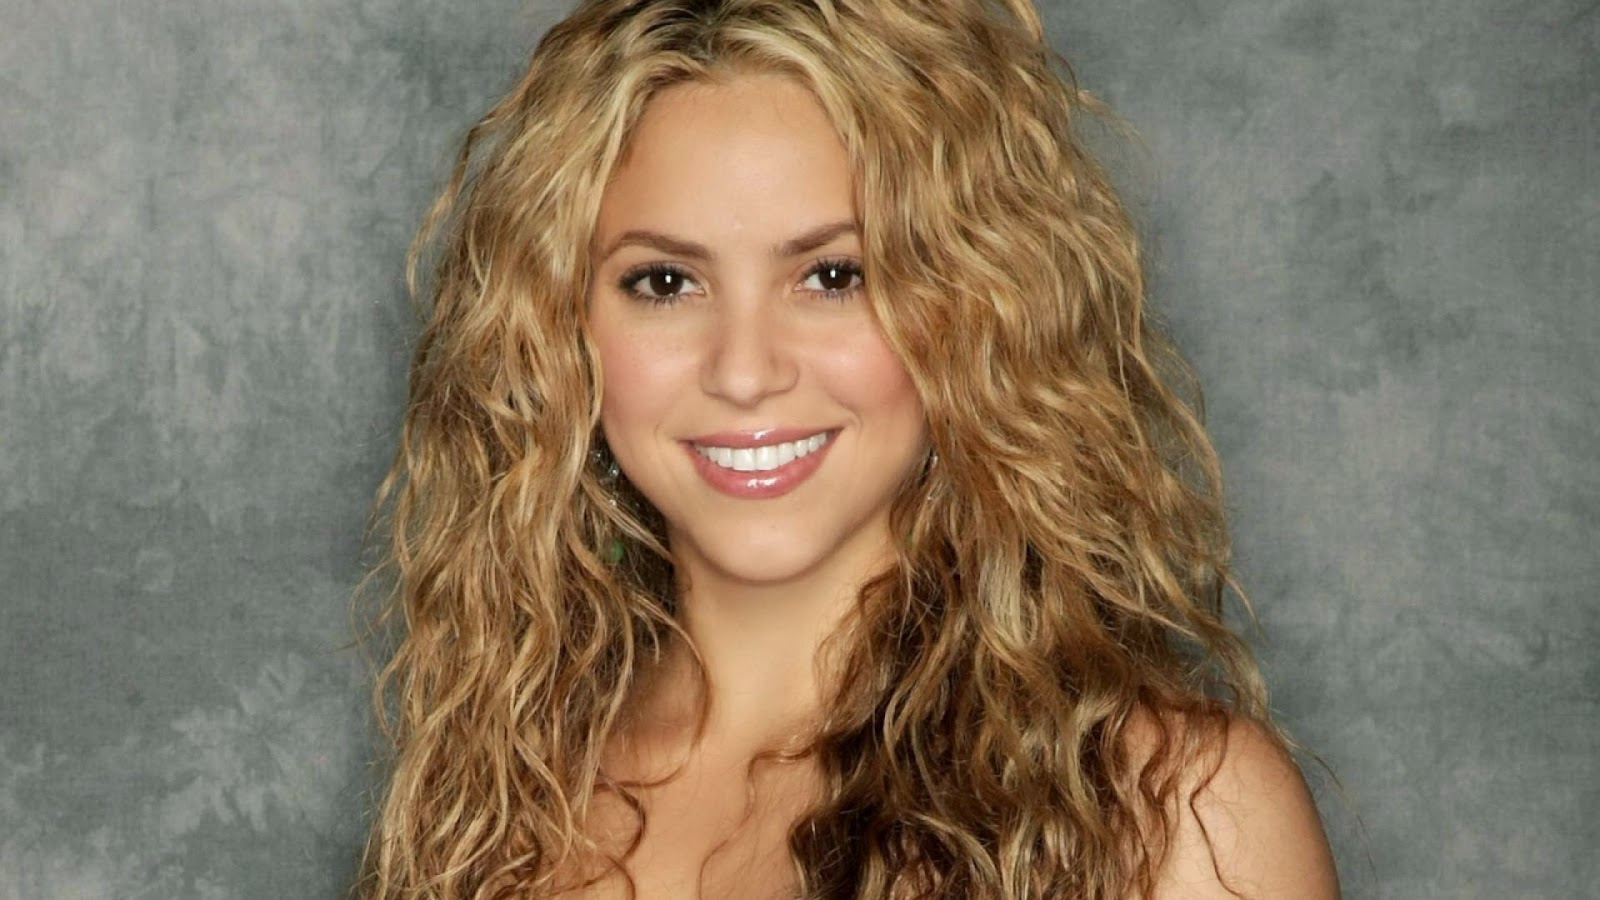 Wallpaper Images With Tamil Quotes Lovable Images Beautiful Shakira Hd Wallpapers Free